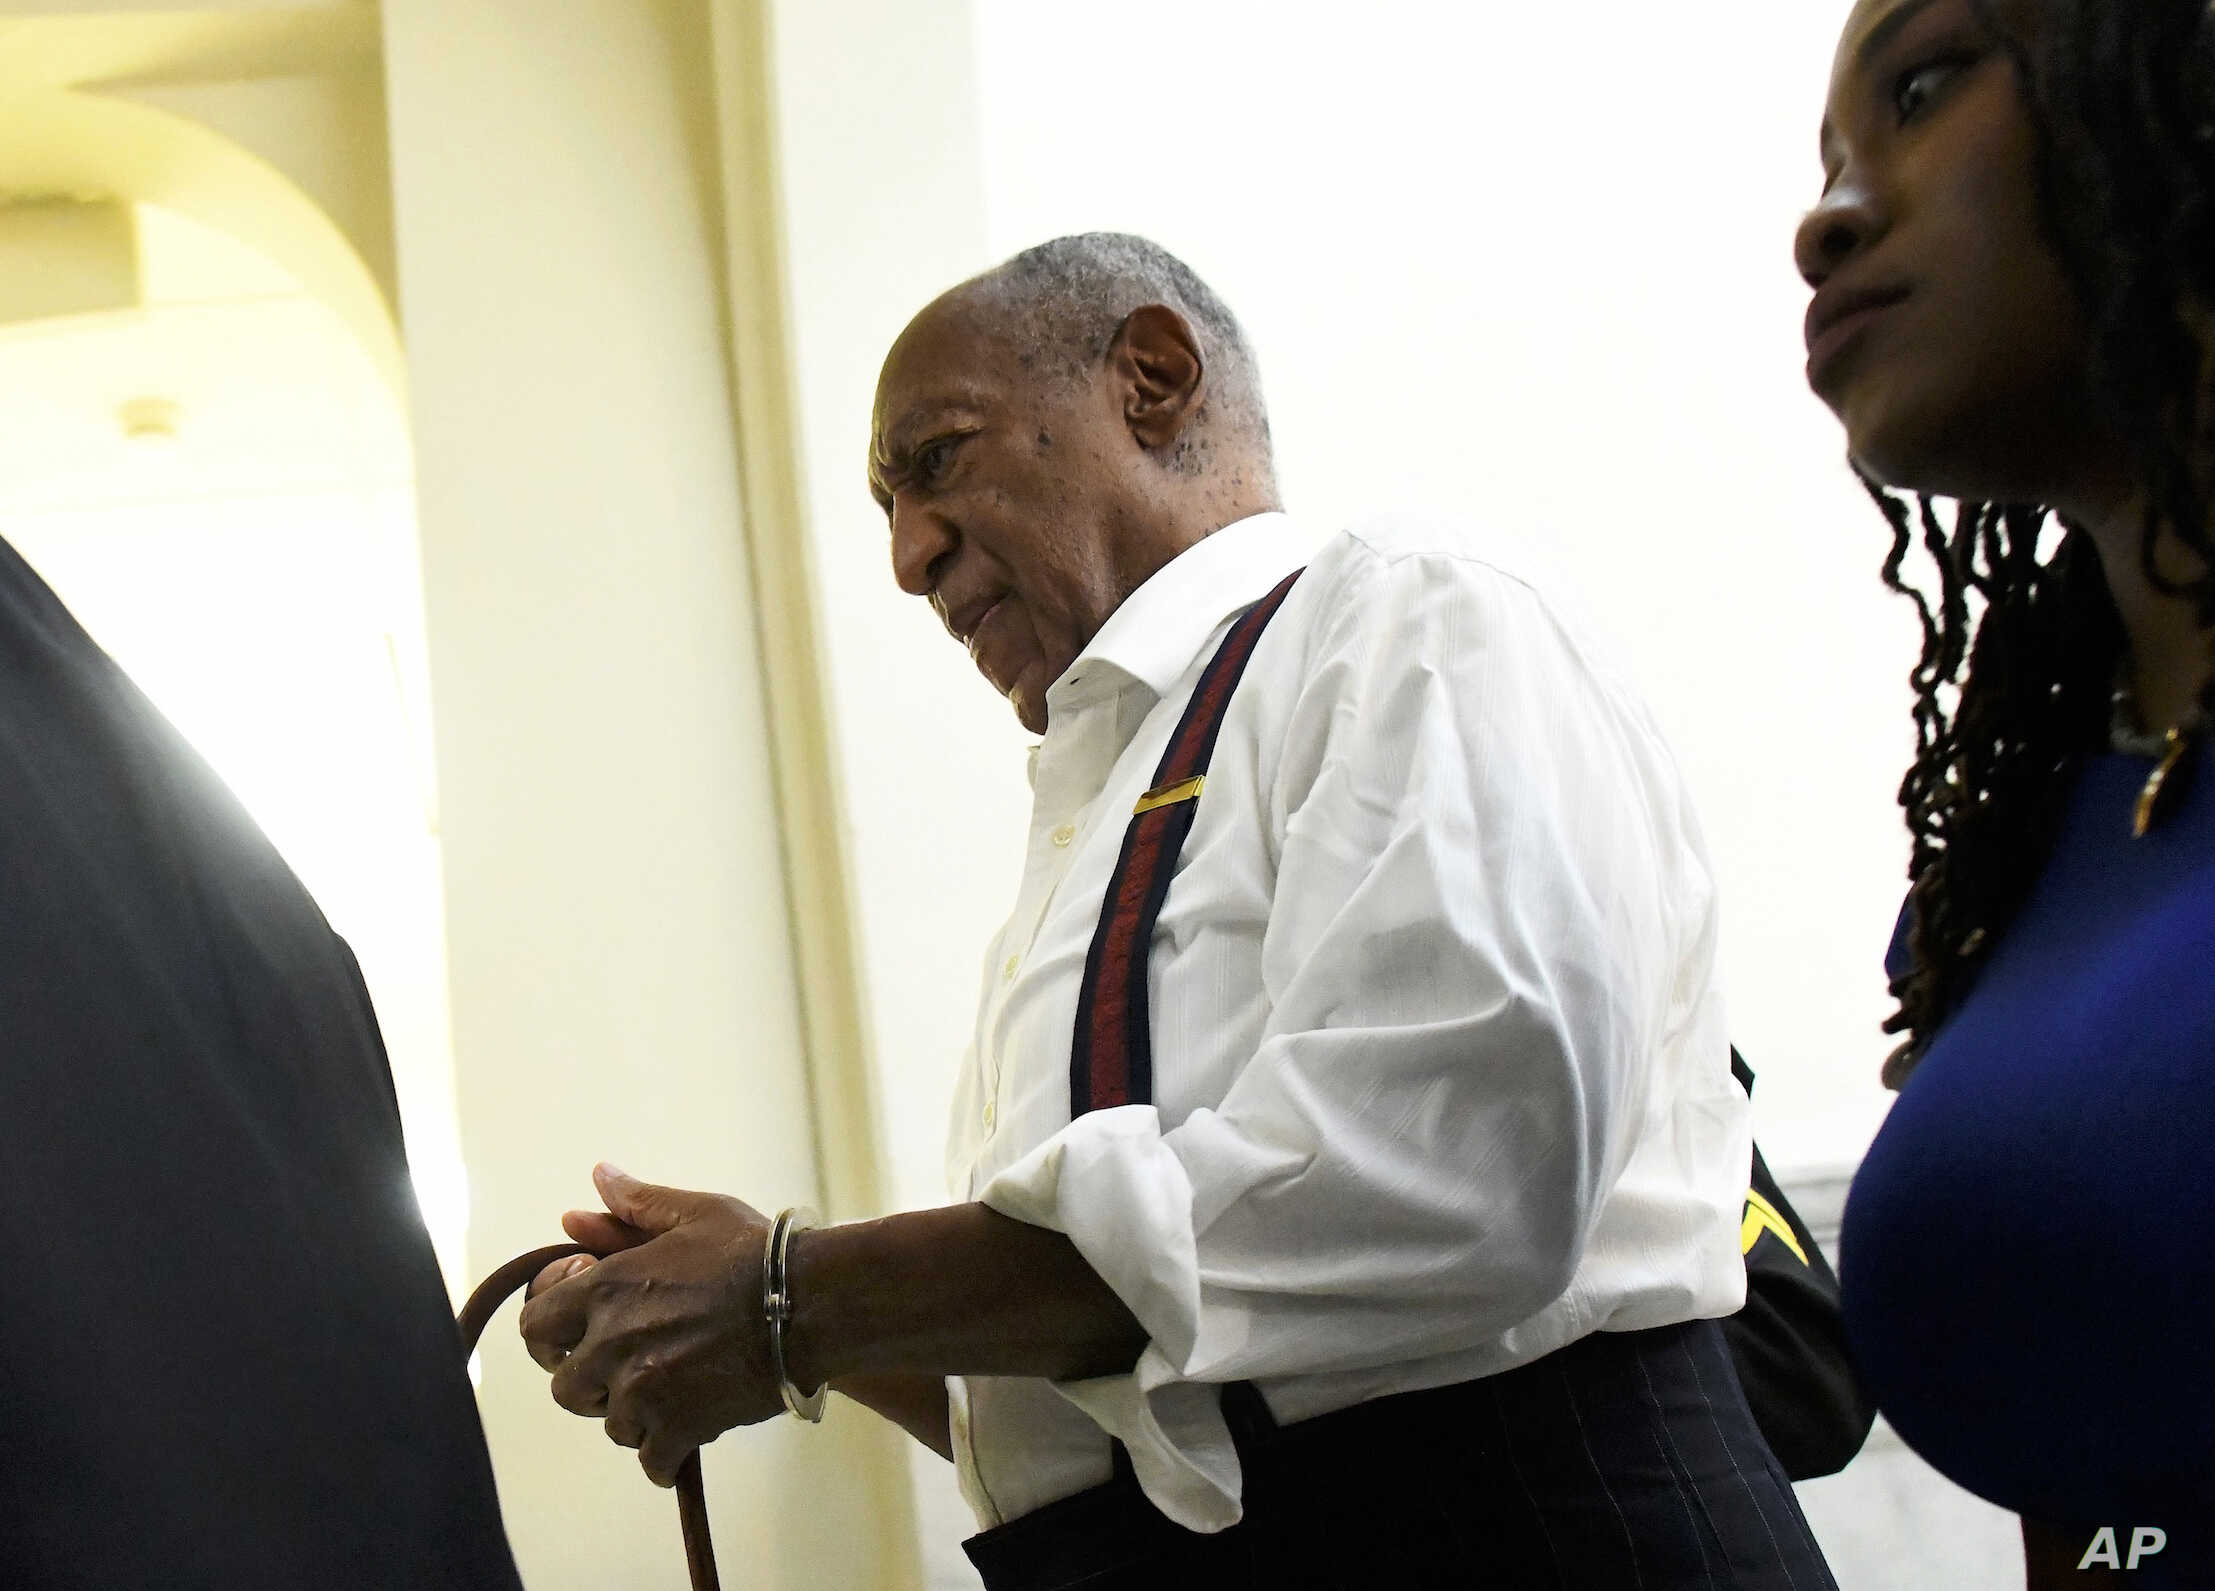 Bill Cosby is taken away in handcuffs after he was sentenced to three-to 10-years for felony sexual assault on Tuesday, Sept. 25, 2018, in Norristown, Pa.